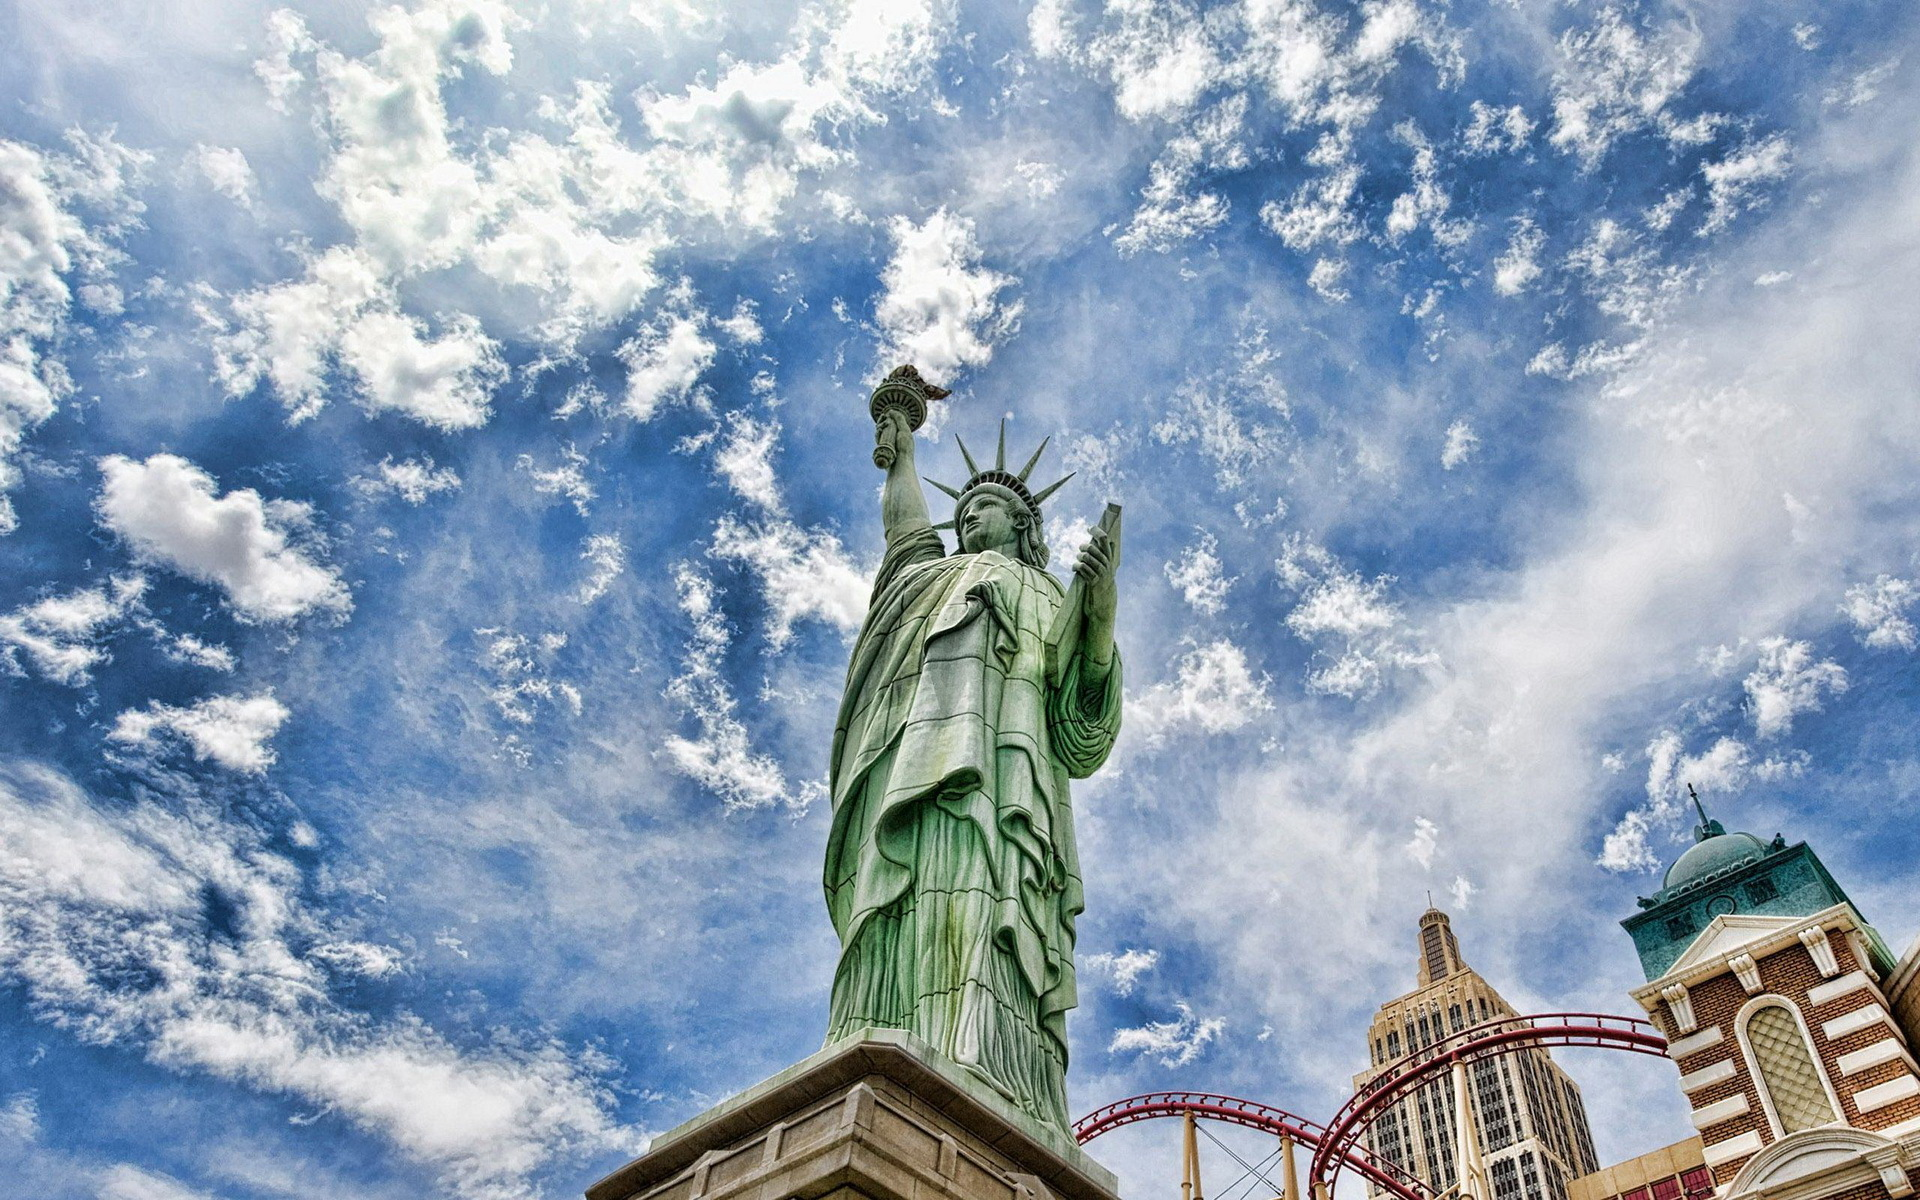 50221 download wallpaper Landscape, Sky, Objects, Statue Of Liberty screensavers and pictures for free